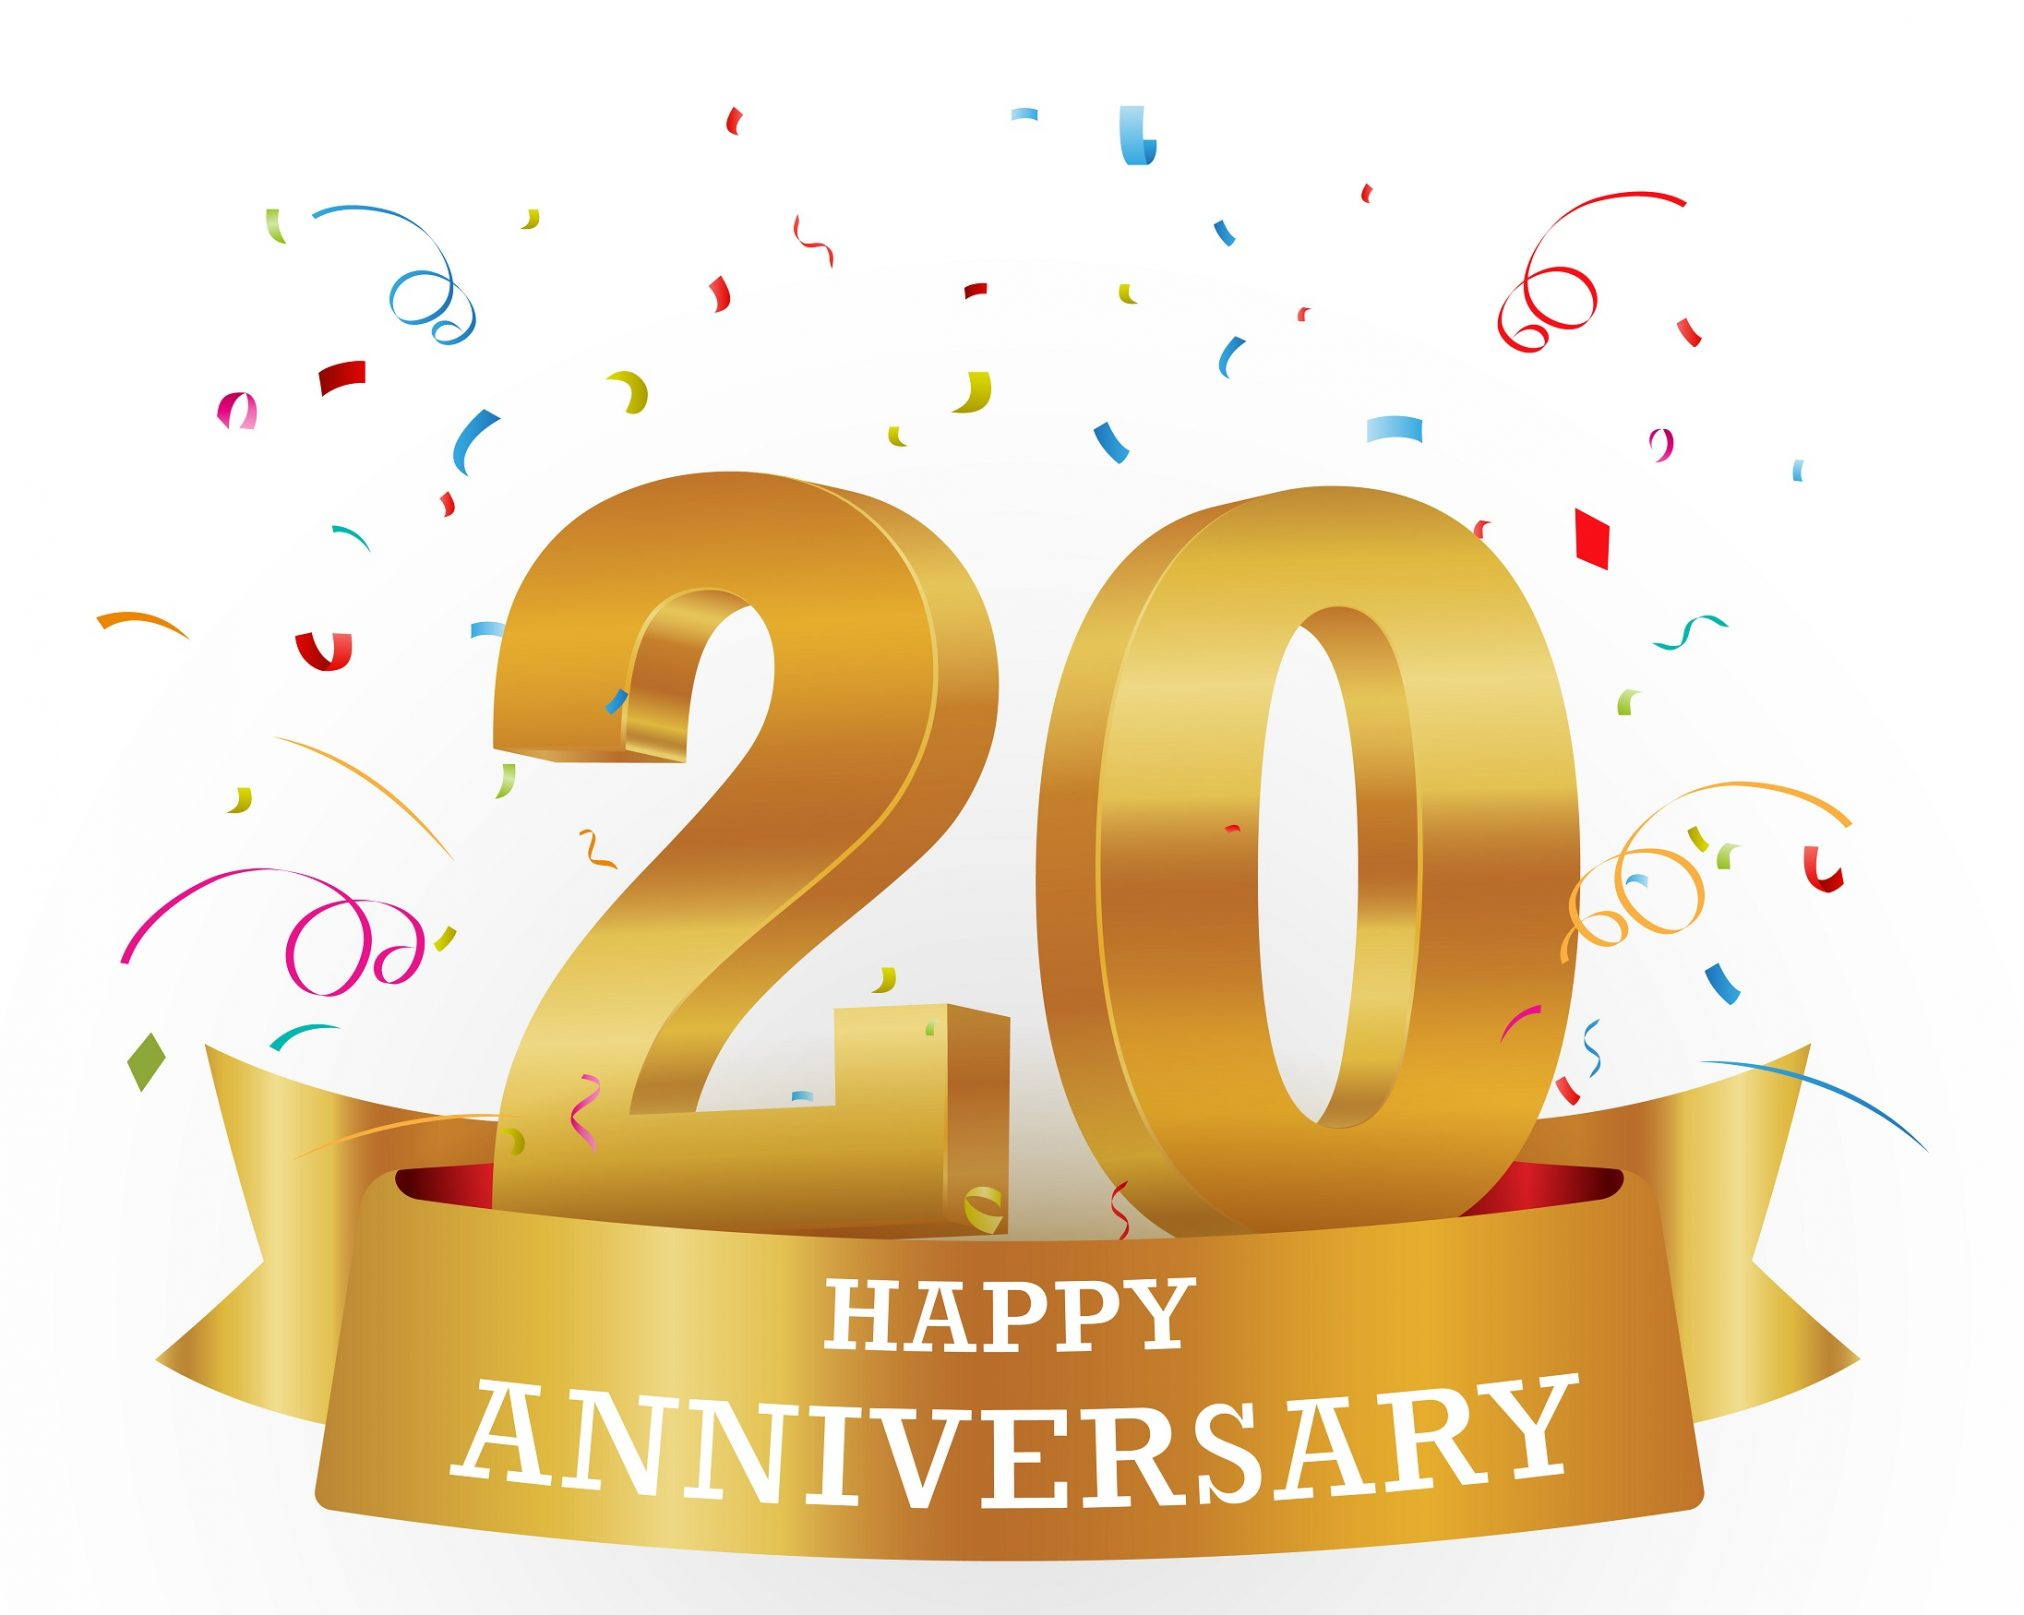 20 years anniversary celebration